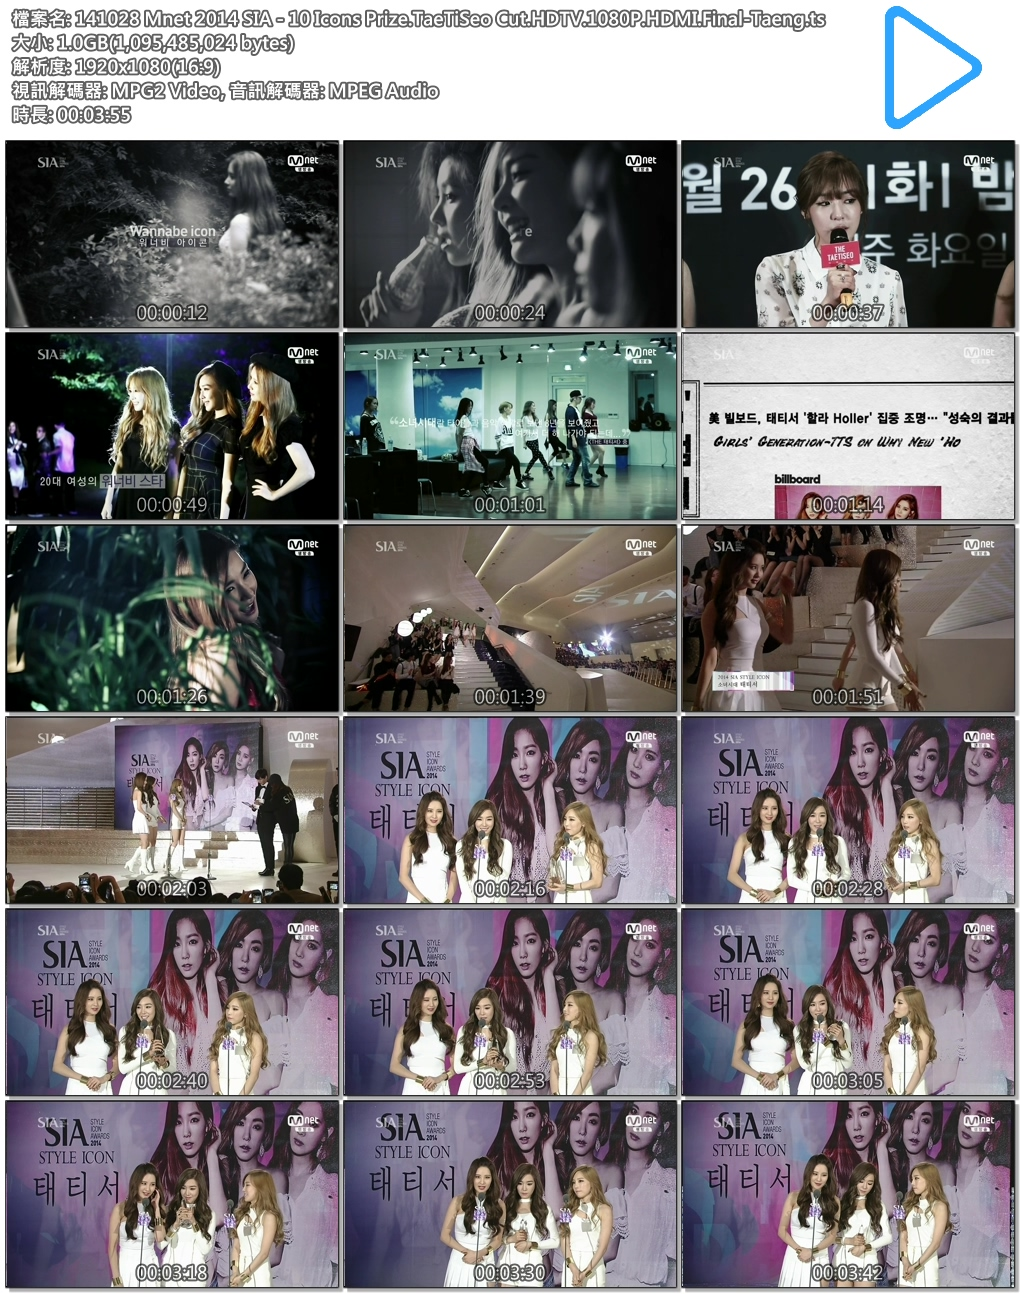 141028 Mnet 2014 SIA - 10 Icons Prize.TaeTiSeo Cut.HDTV.1080P.HDMI.Final-Taeng.ts.jpg